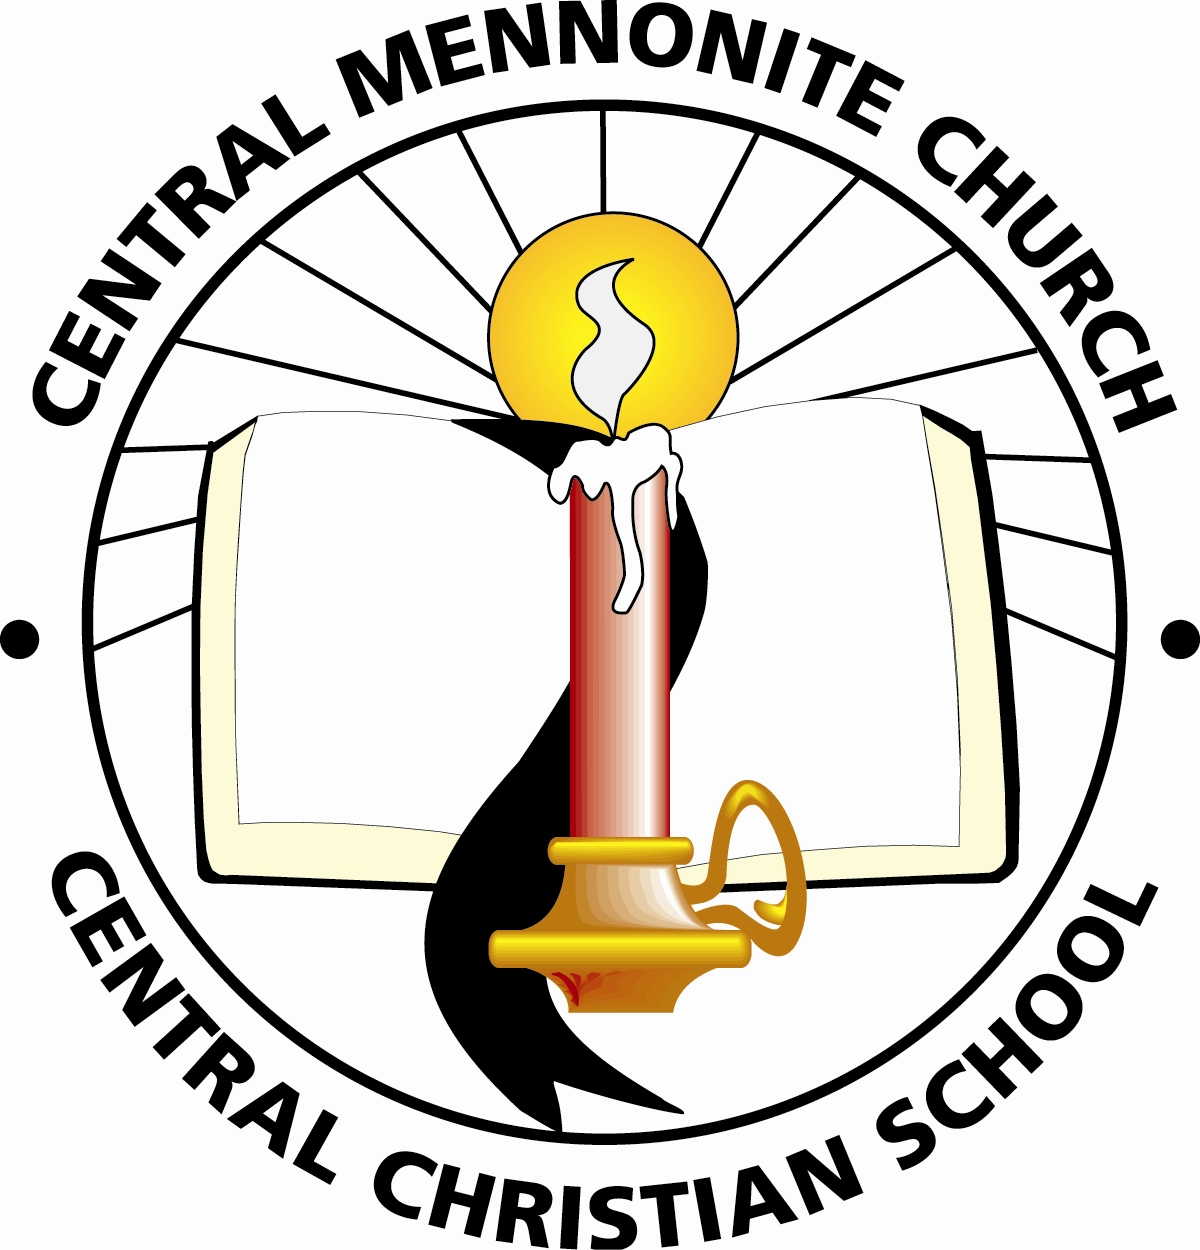 Central Mennonite Church